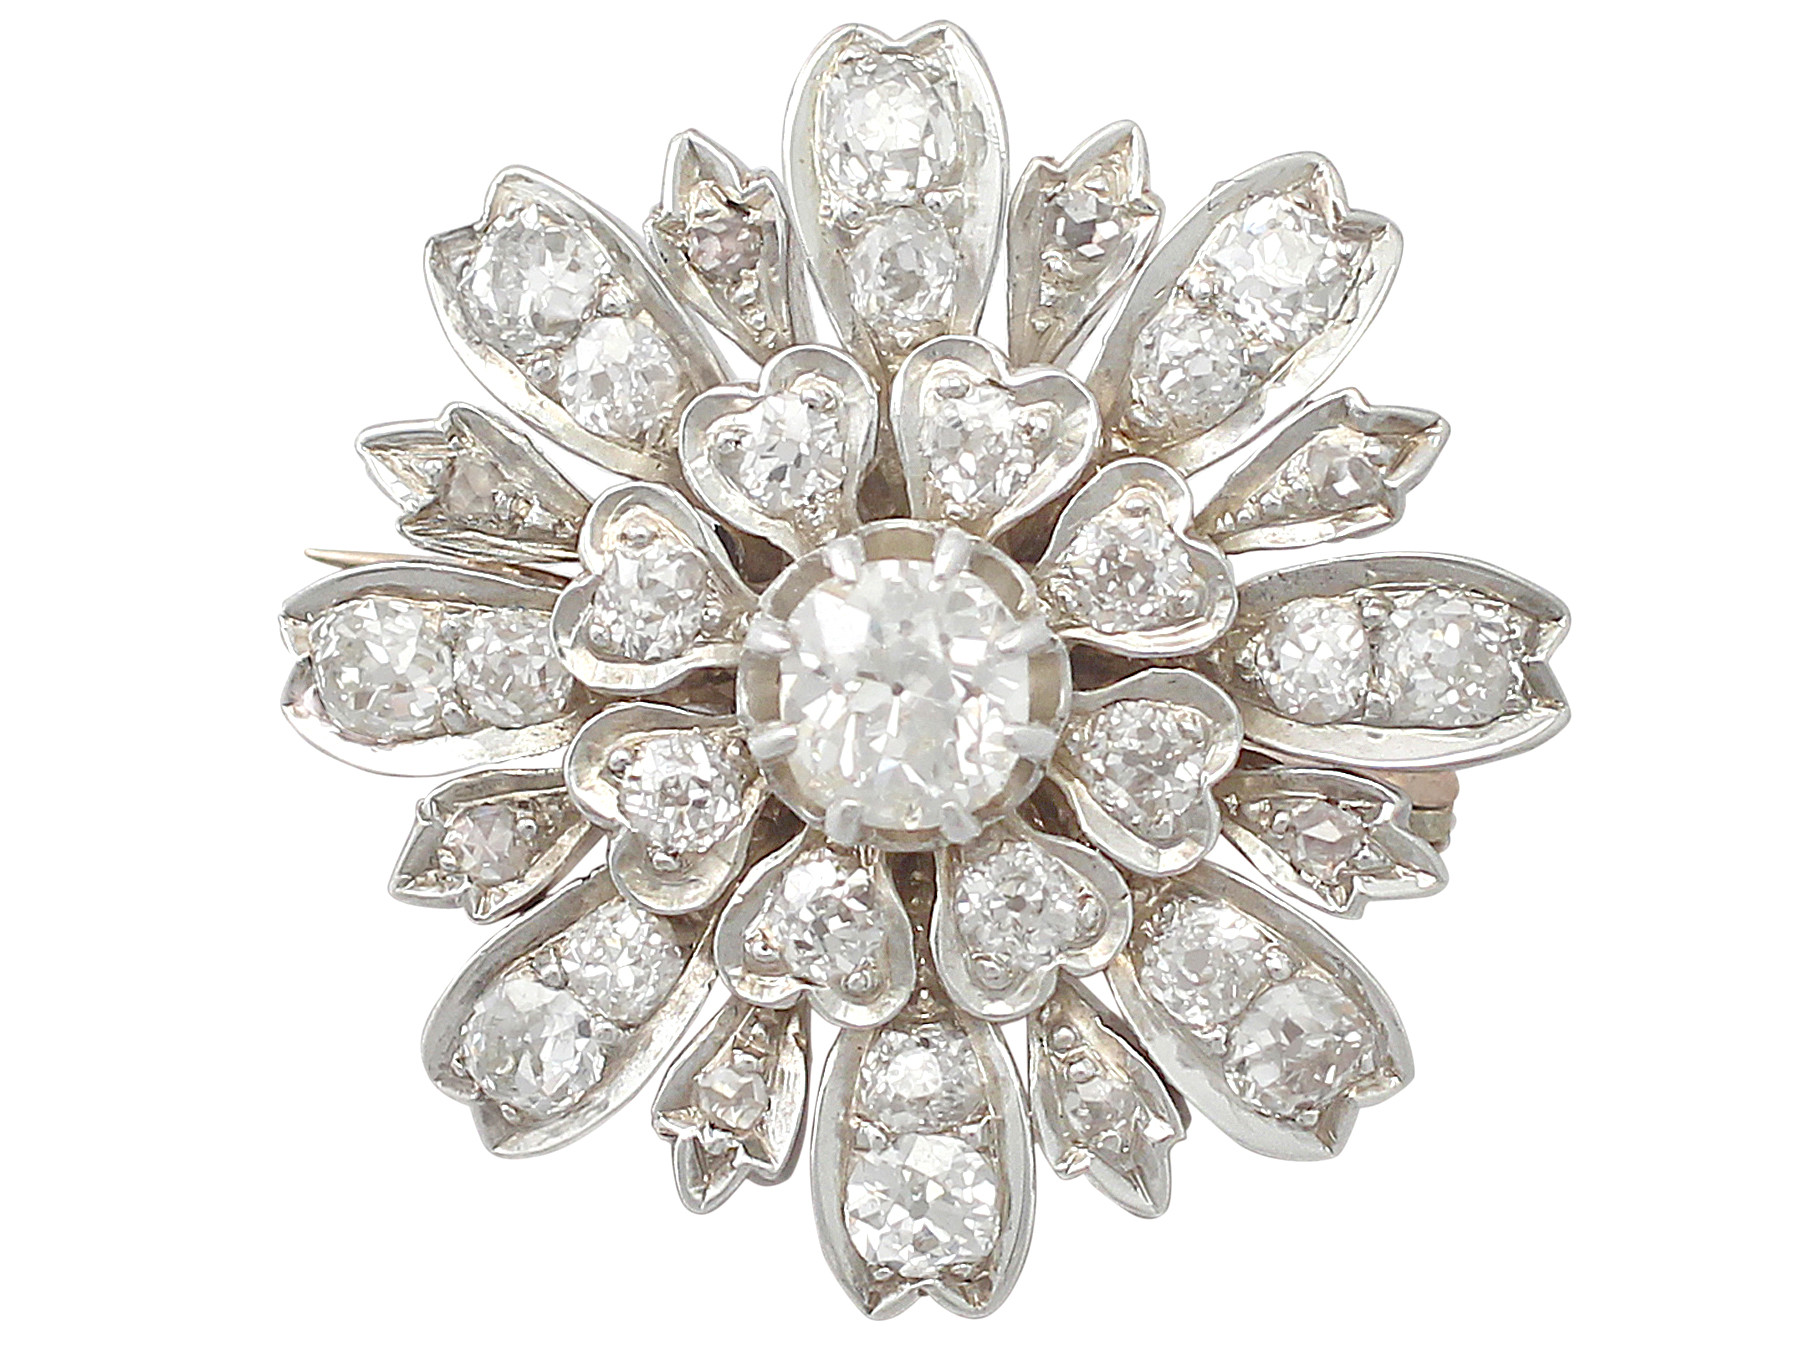 diamond brooch antique 4.08 ct diamond and 9 ct yellow gold, silver set brooch mzofotk